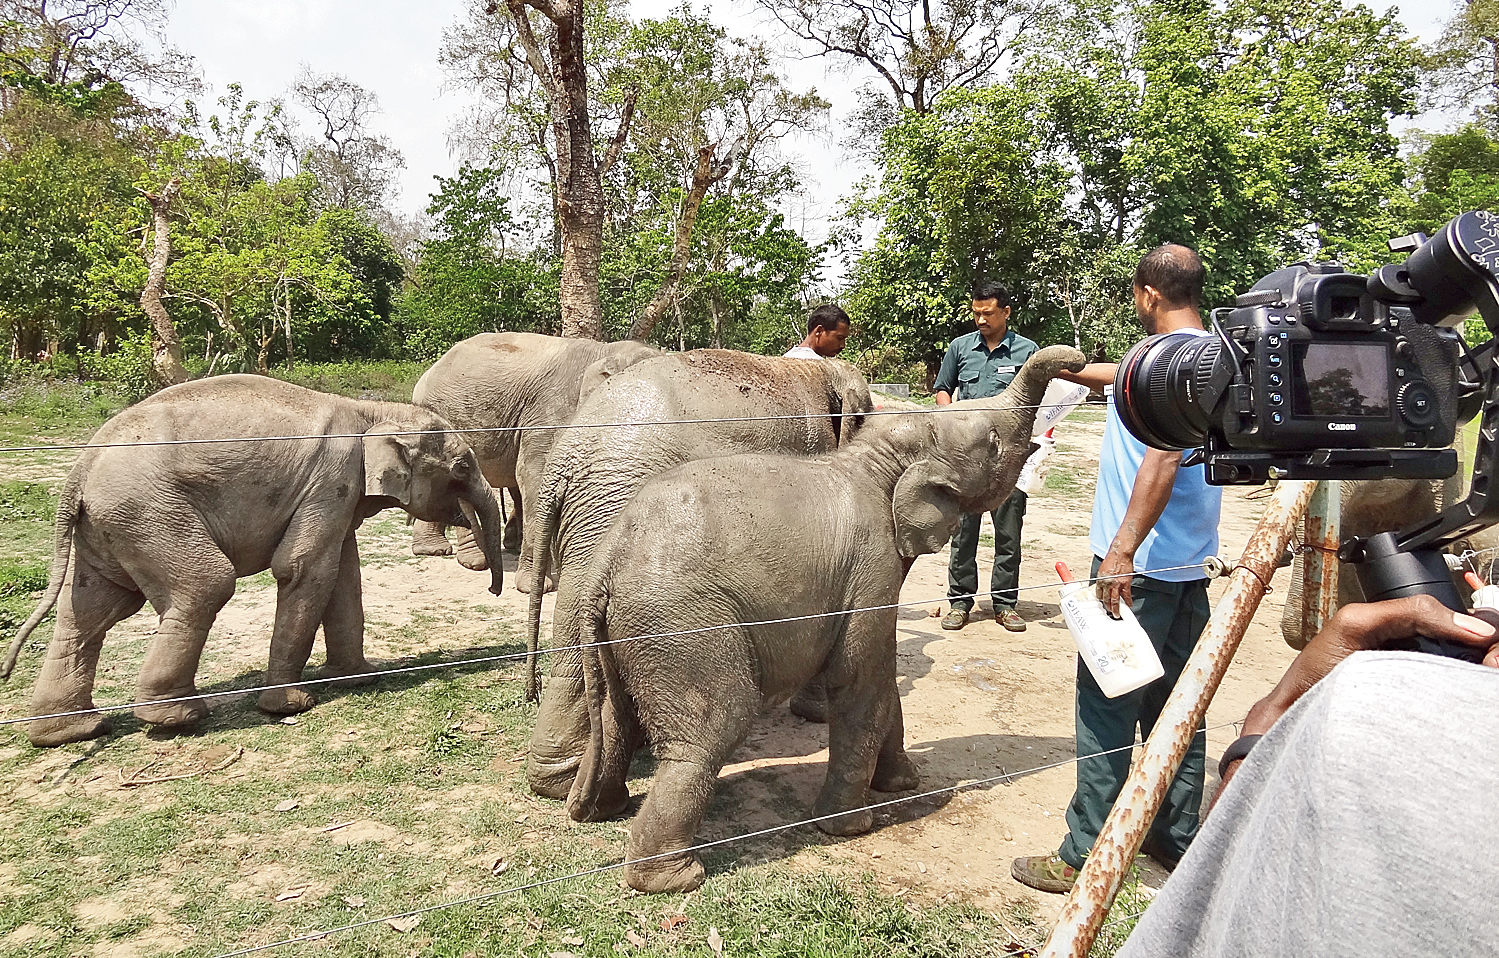 Baby elephants being fed by keepers at Kaziranga National Park